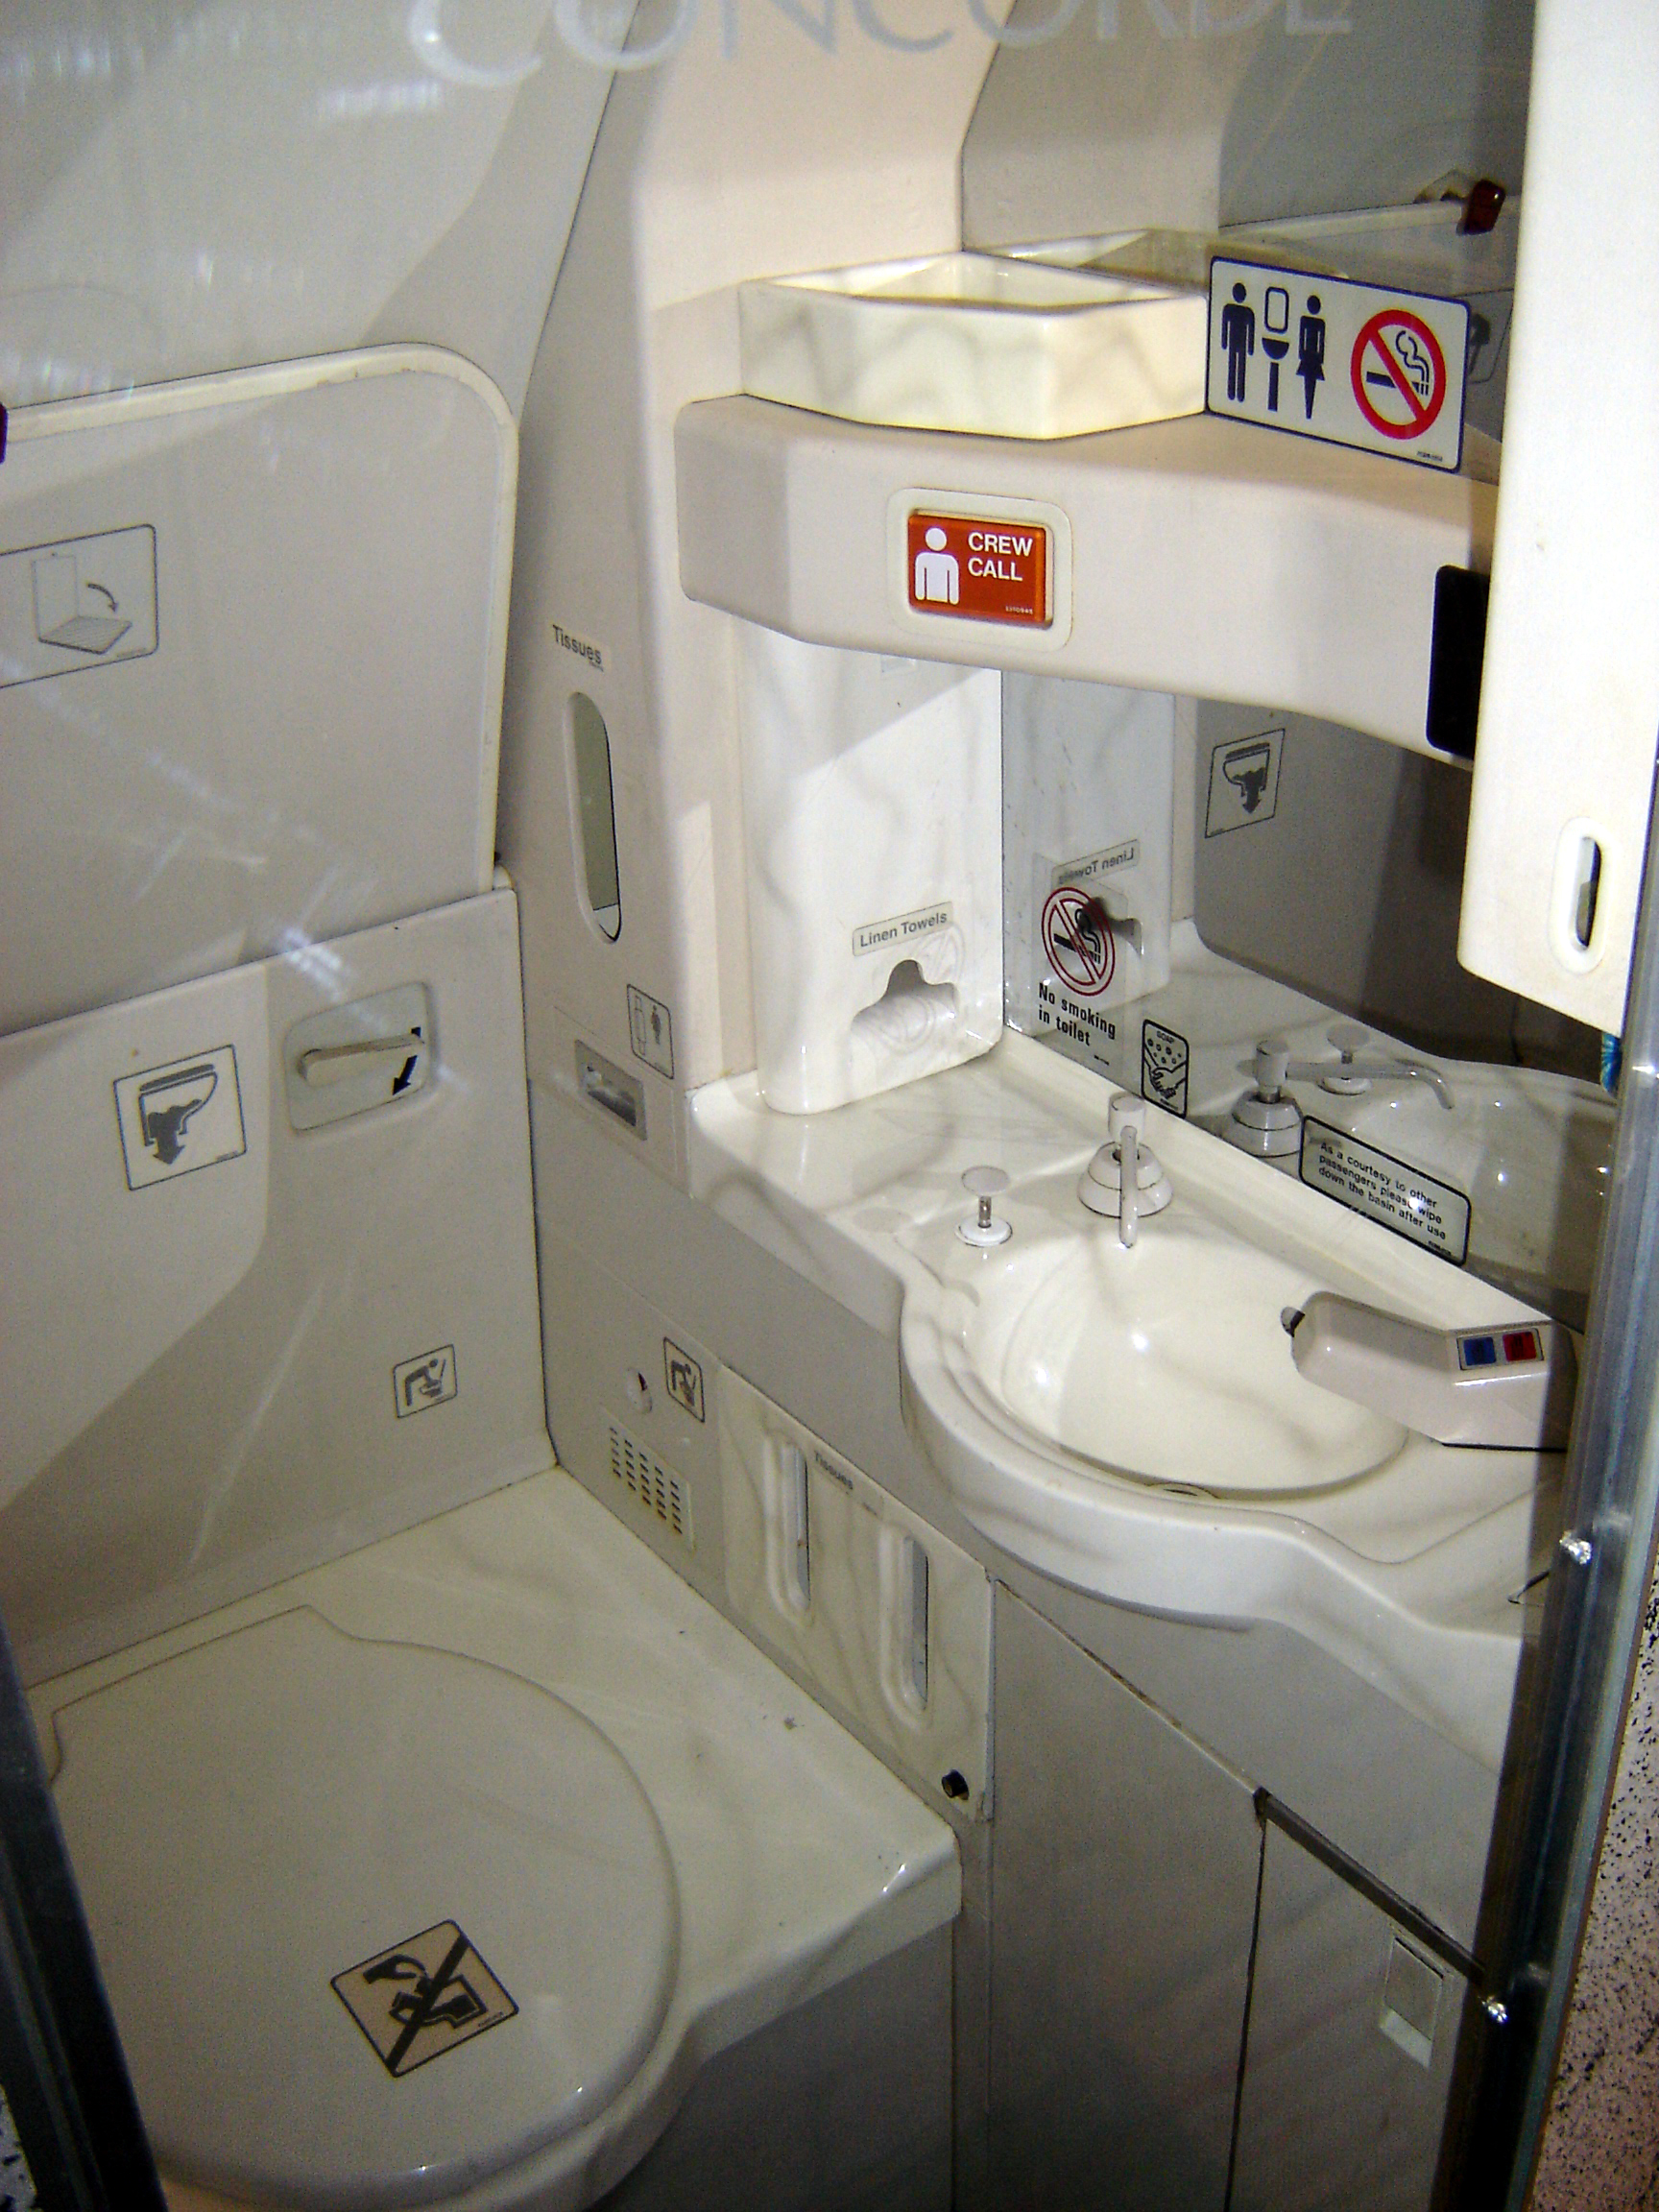 Airplane bathrooms make you old. whathappenedtoguentherlause #634A3C 1728x2304 Banheiro De Avião Como Usar